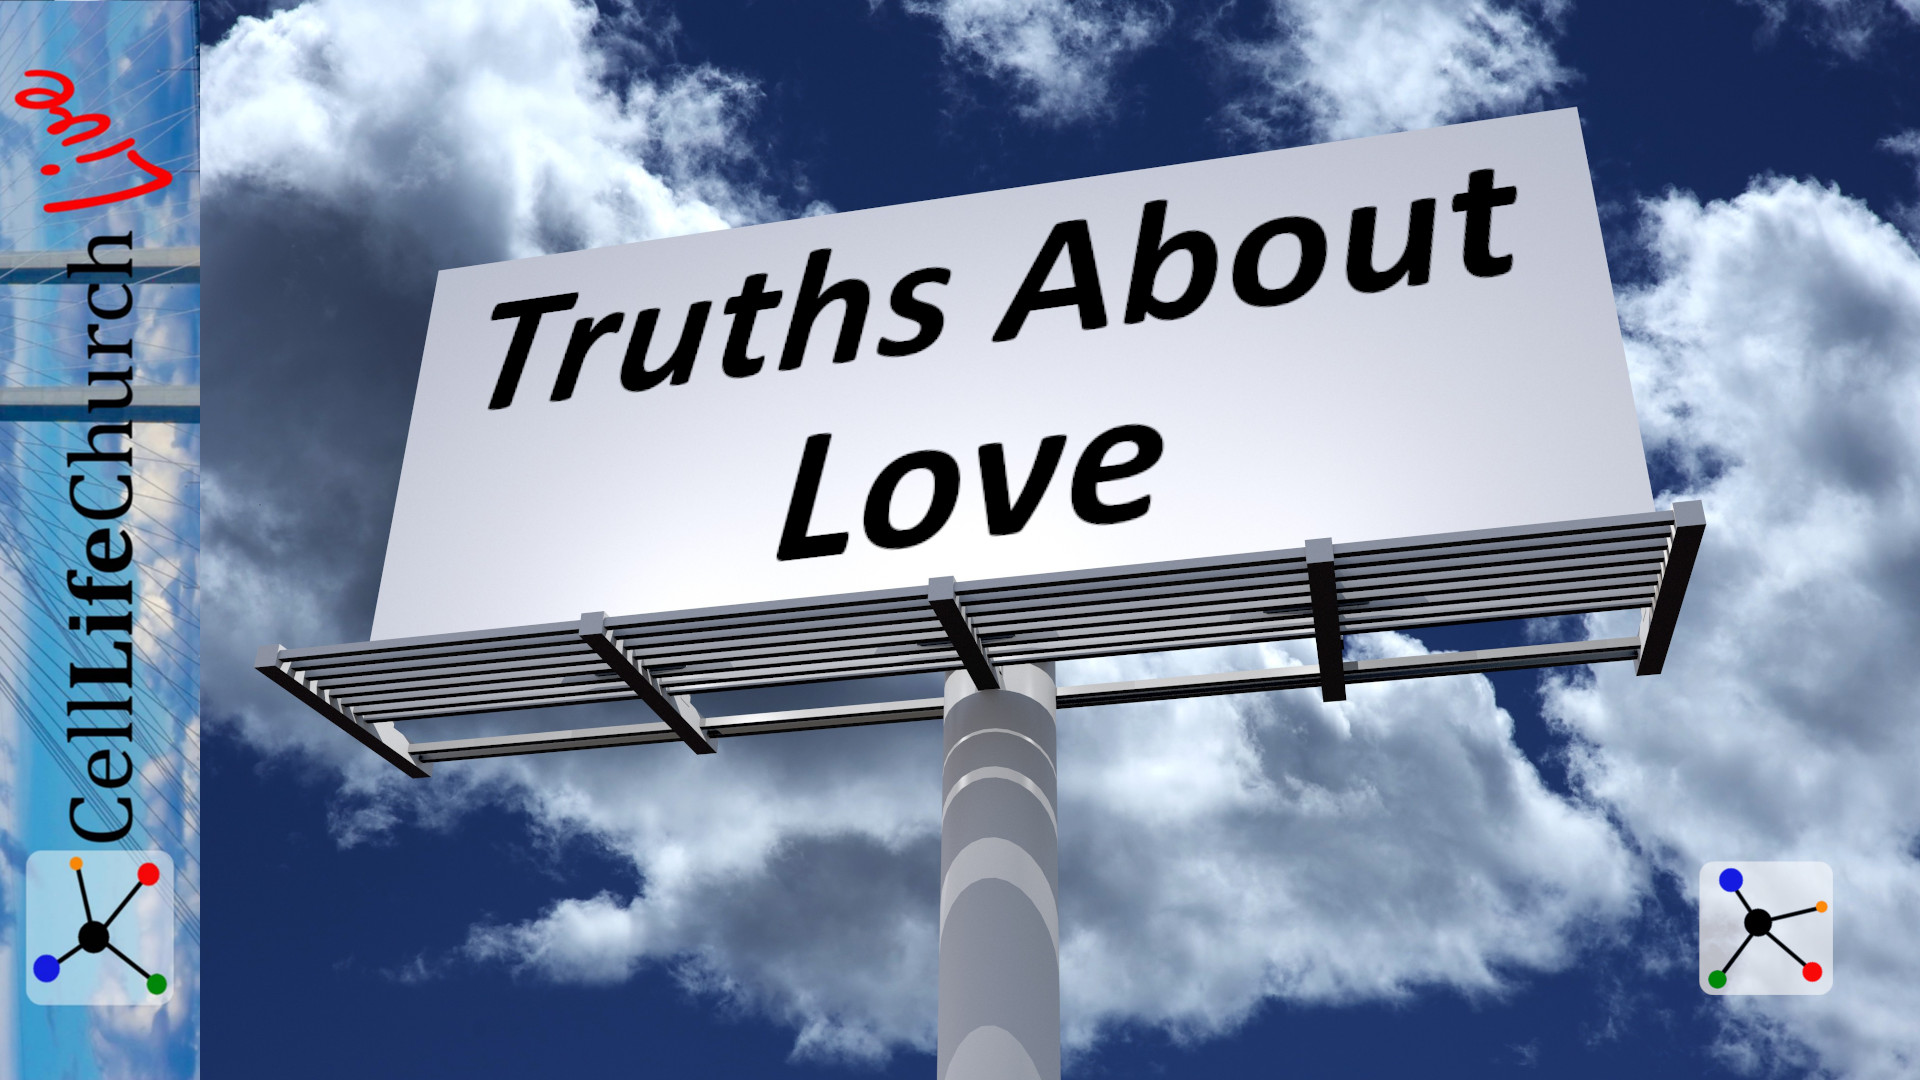 Truths About Love